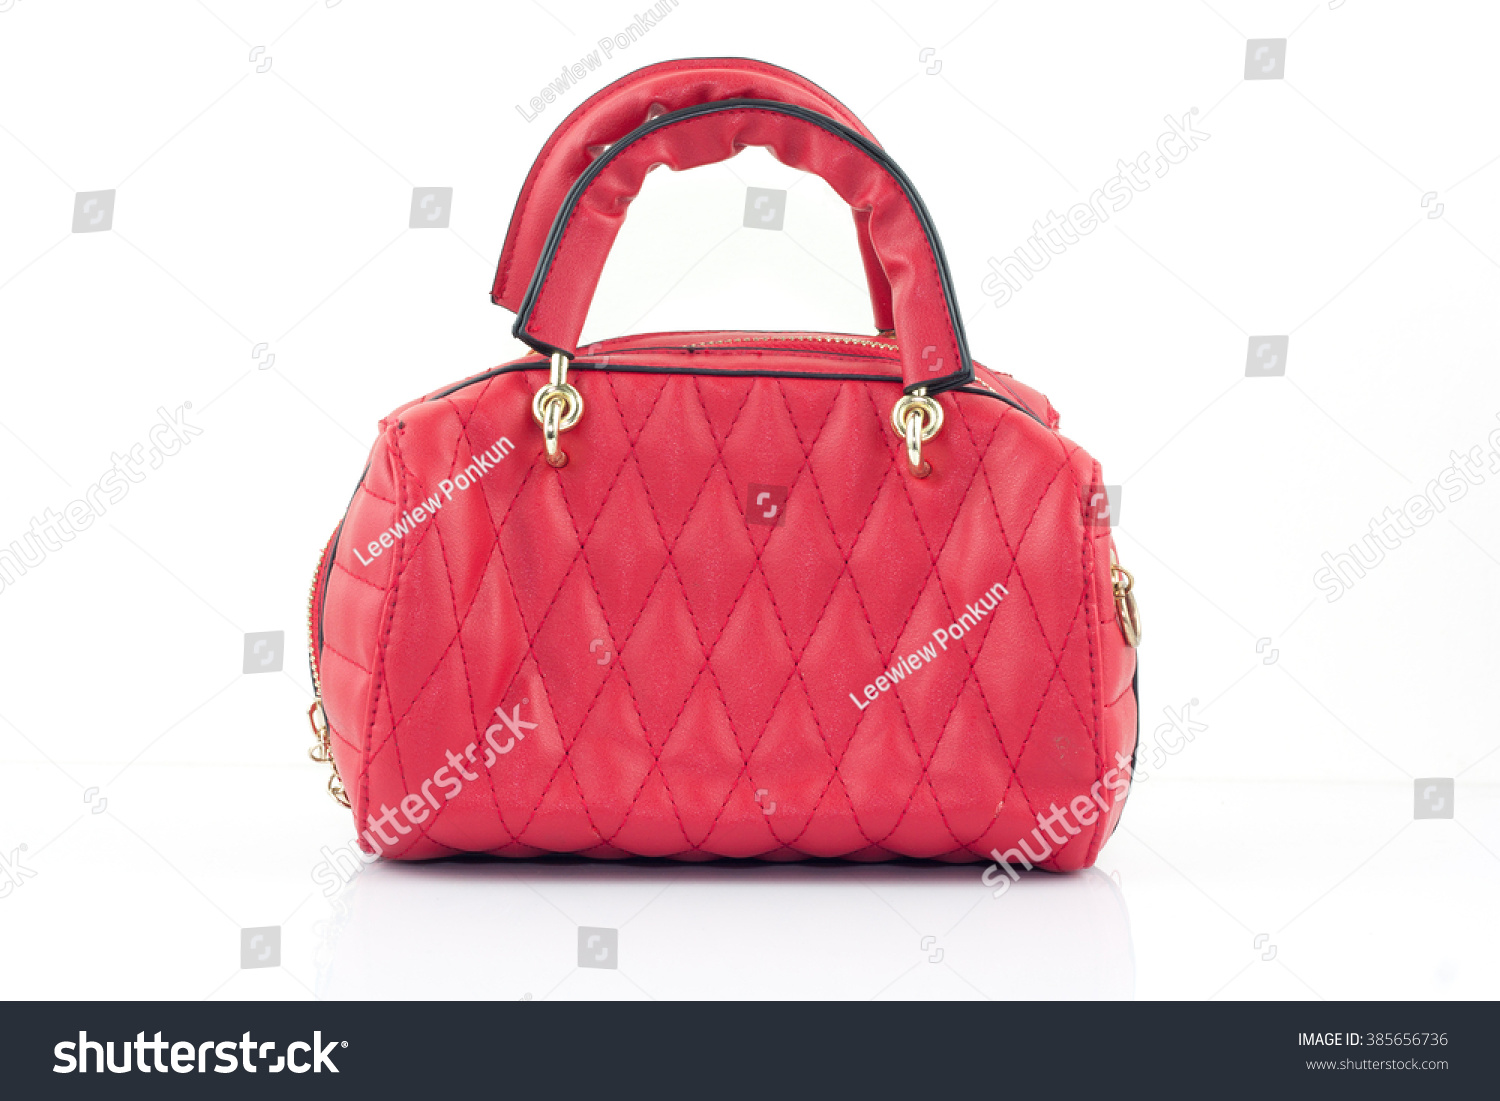 f37e2020bb880 Red Women Bag Isolated On White Stock Photo (Edit Now) 385656736 ...